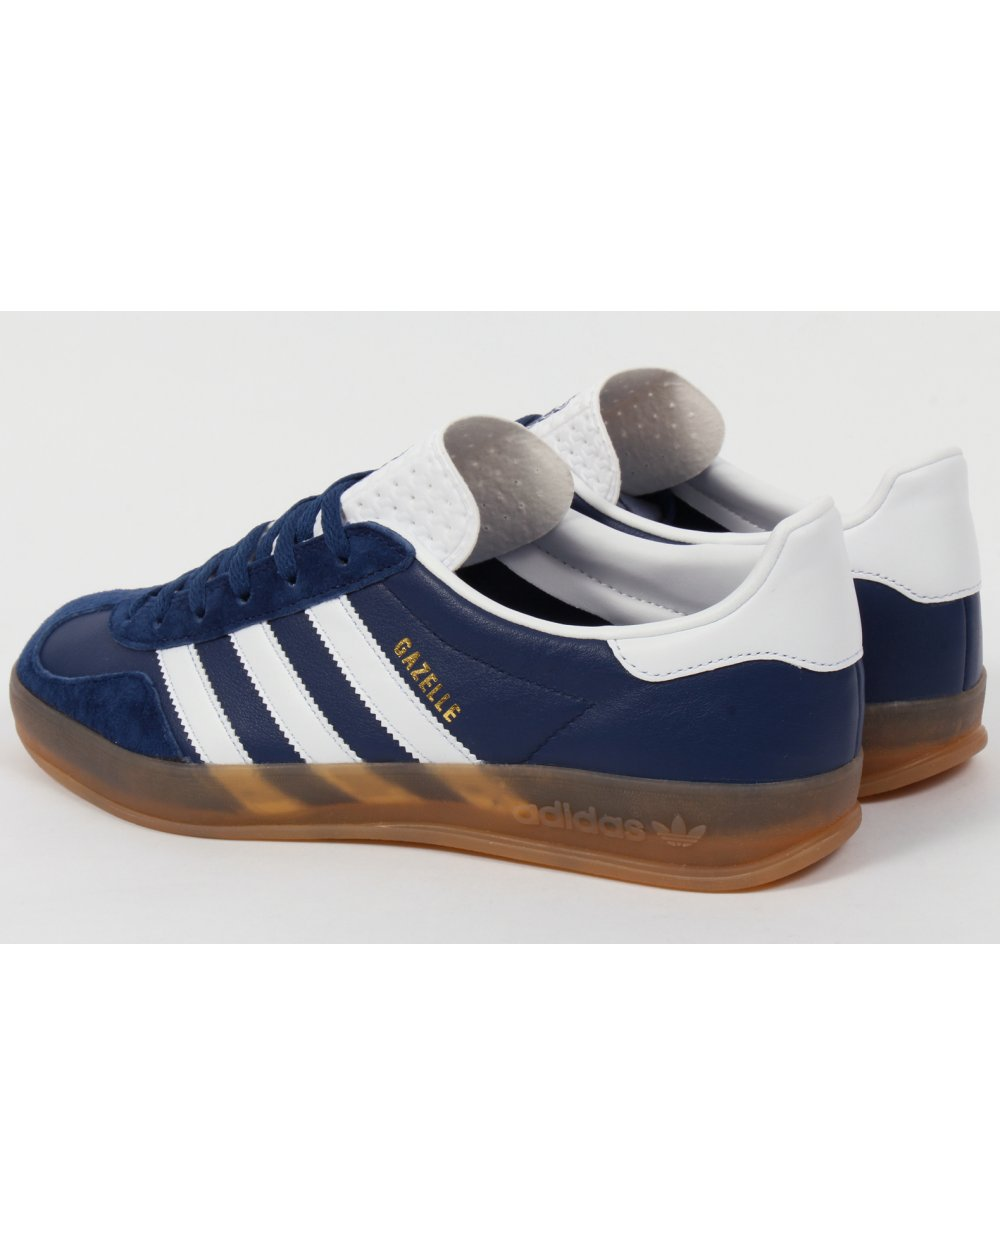 adidas gazelle indoor 8.5